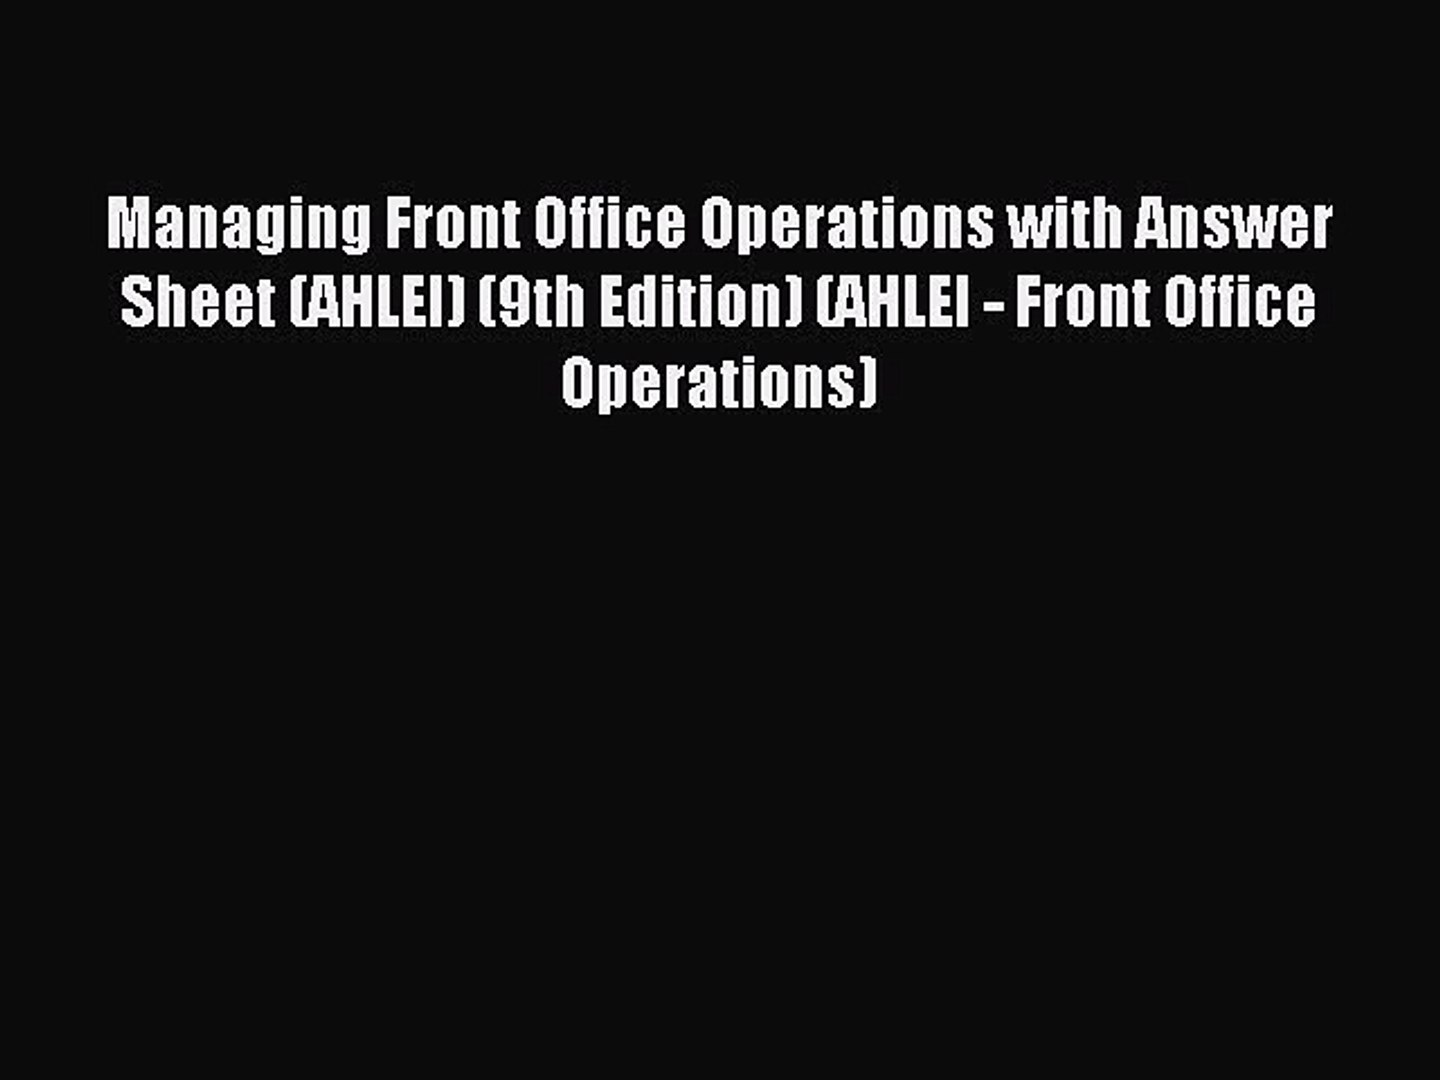 Read Managing Front Office Operations with Answer Sheet (AHLEI) (9th Edition) (AHLEI - Front